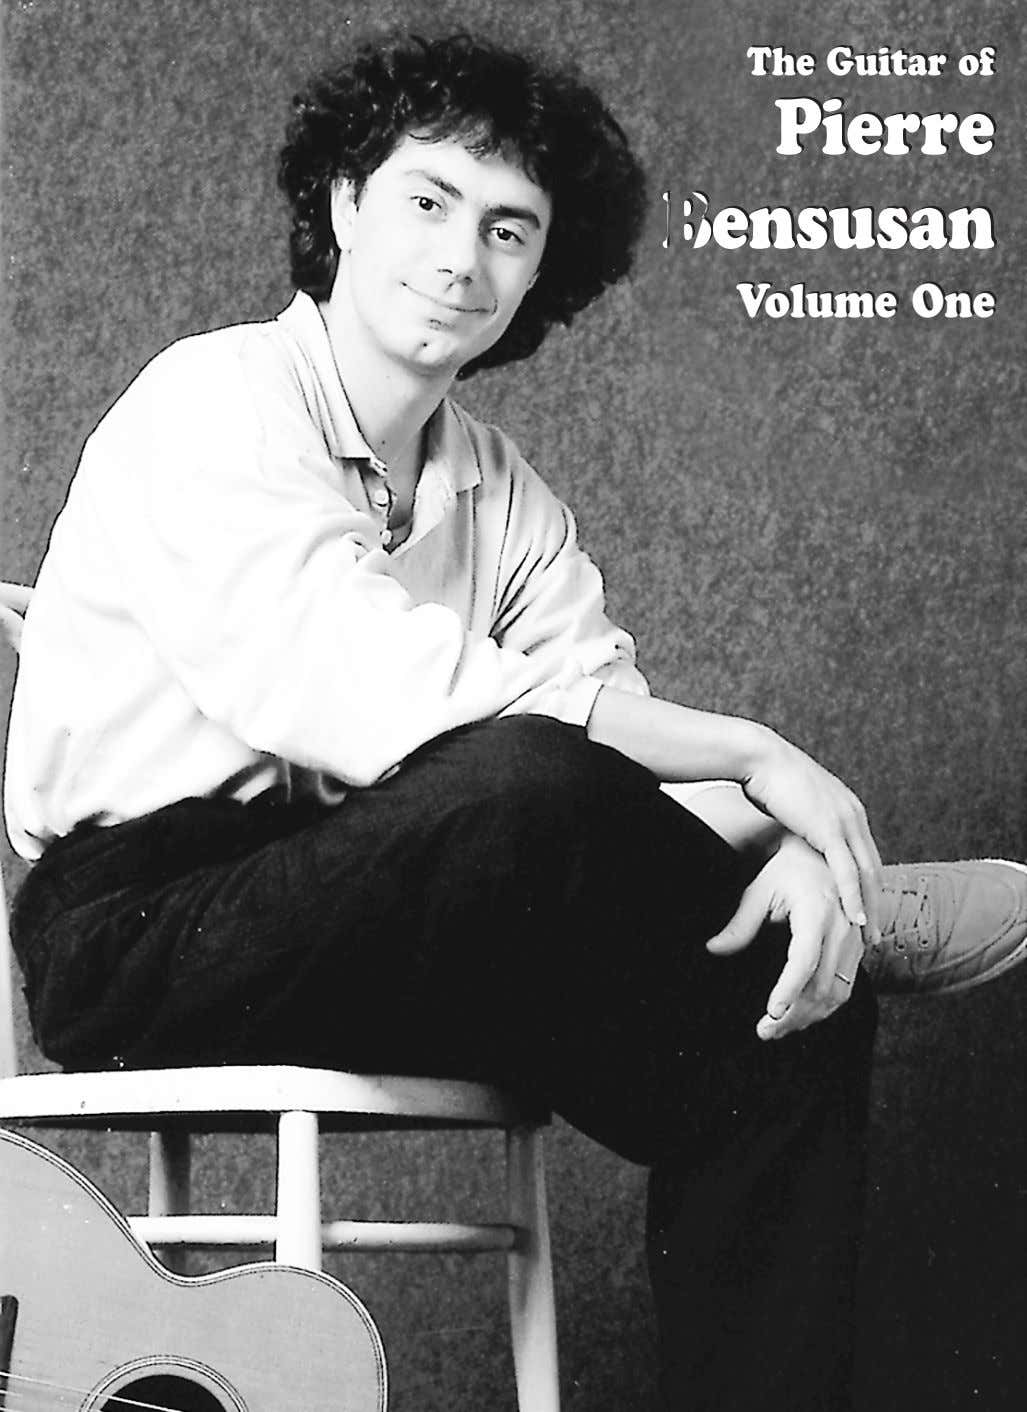 The The Guitar Guitar of of Pierre Pierre Bensusan Bensusan Volume Volume One One